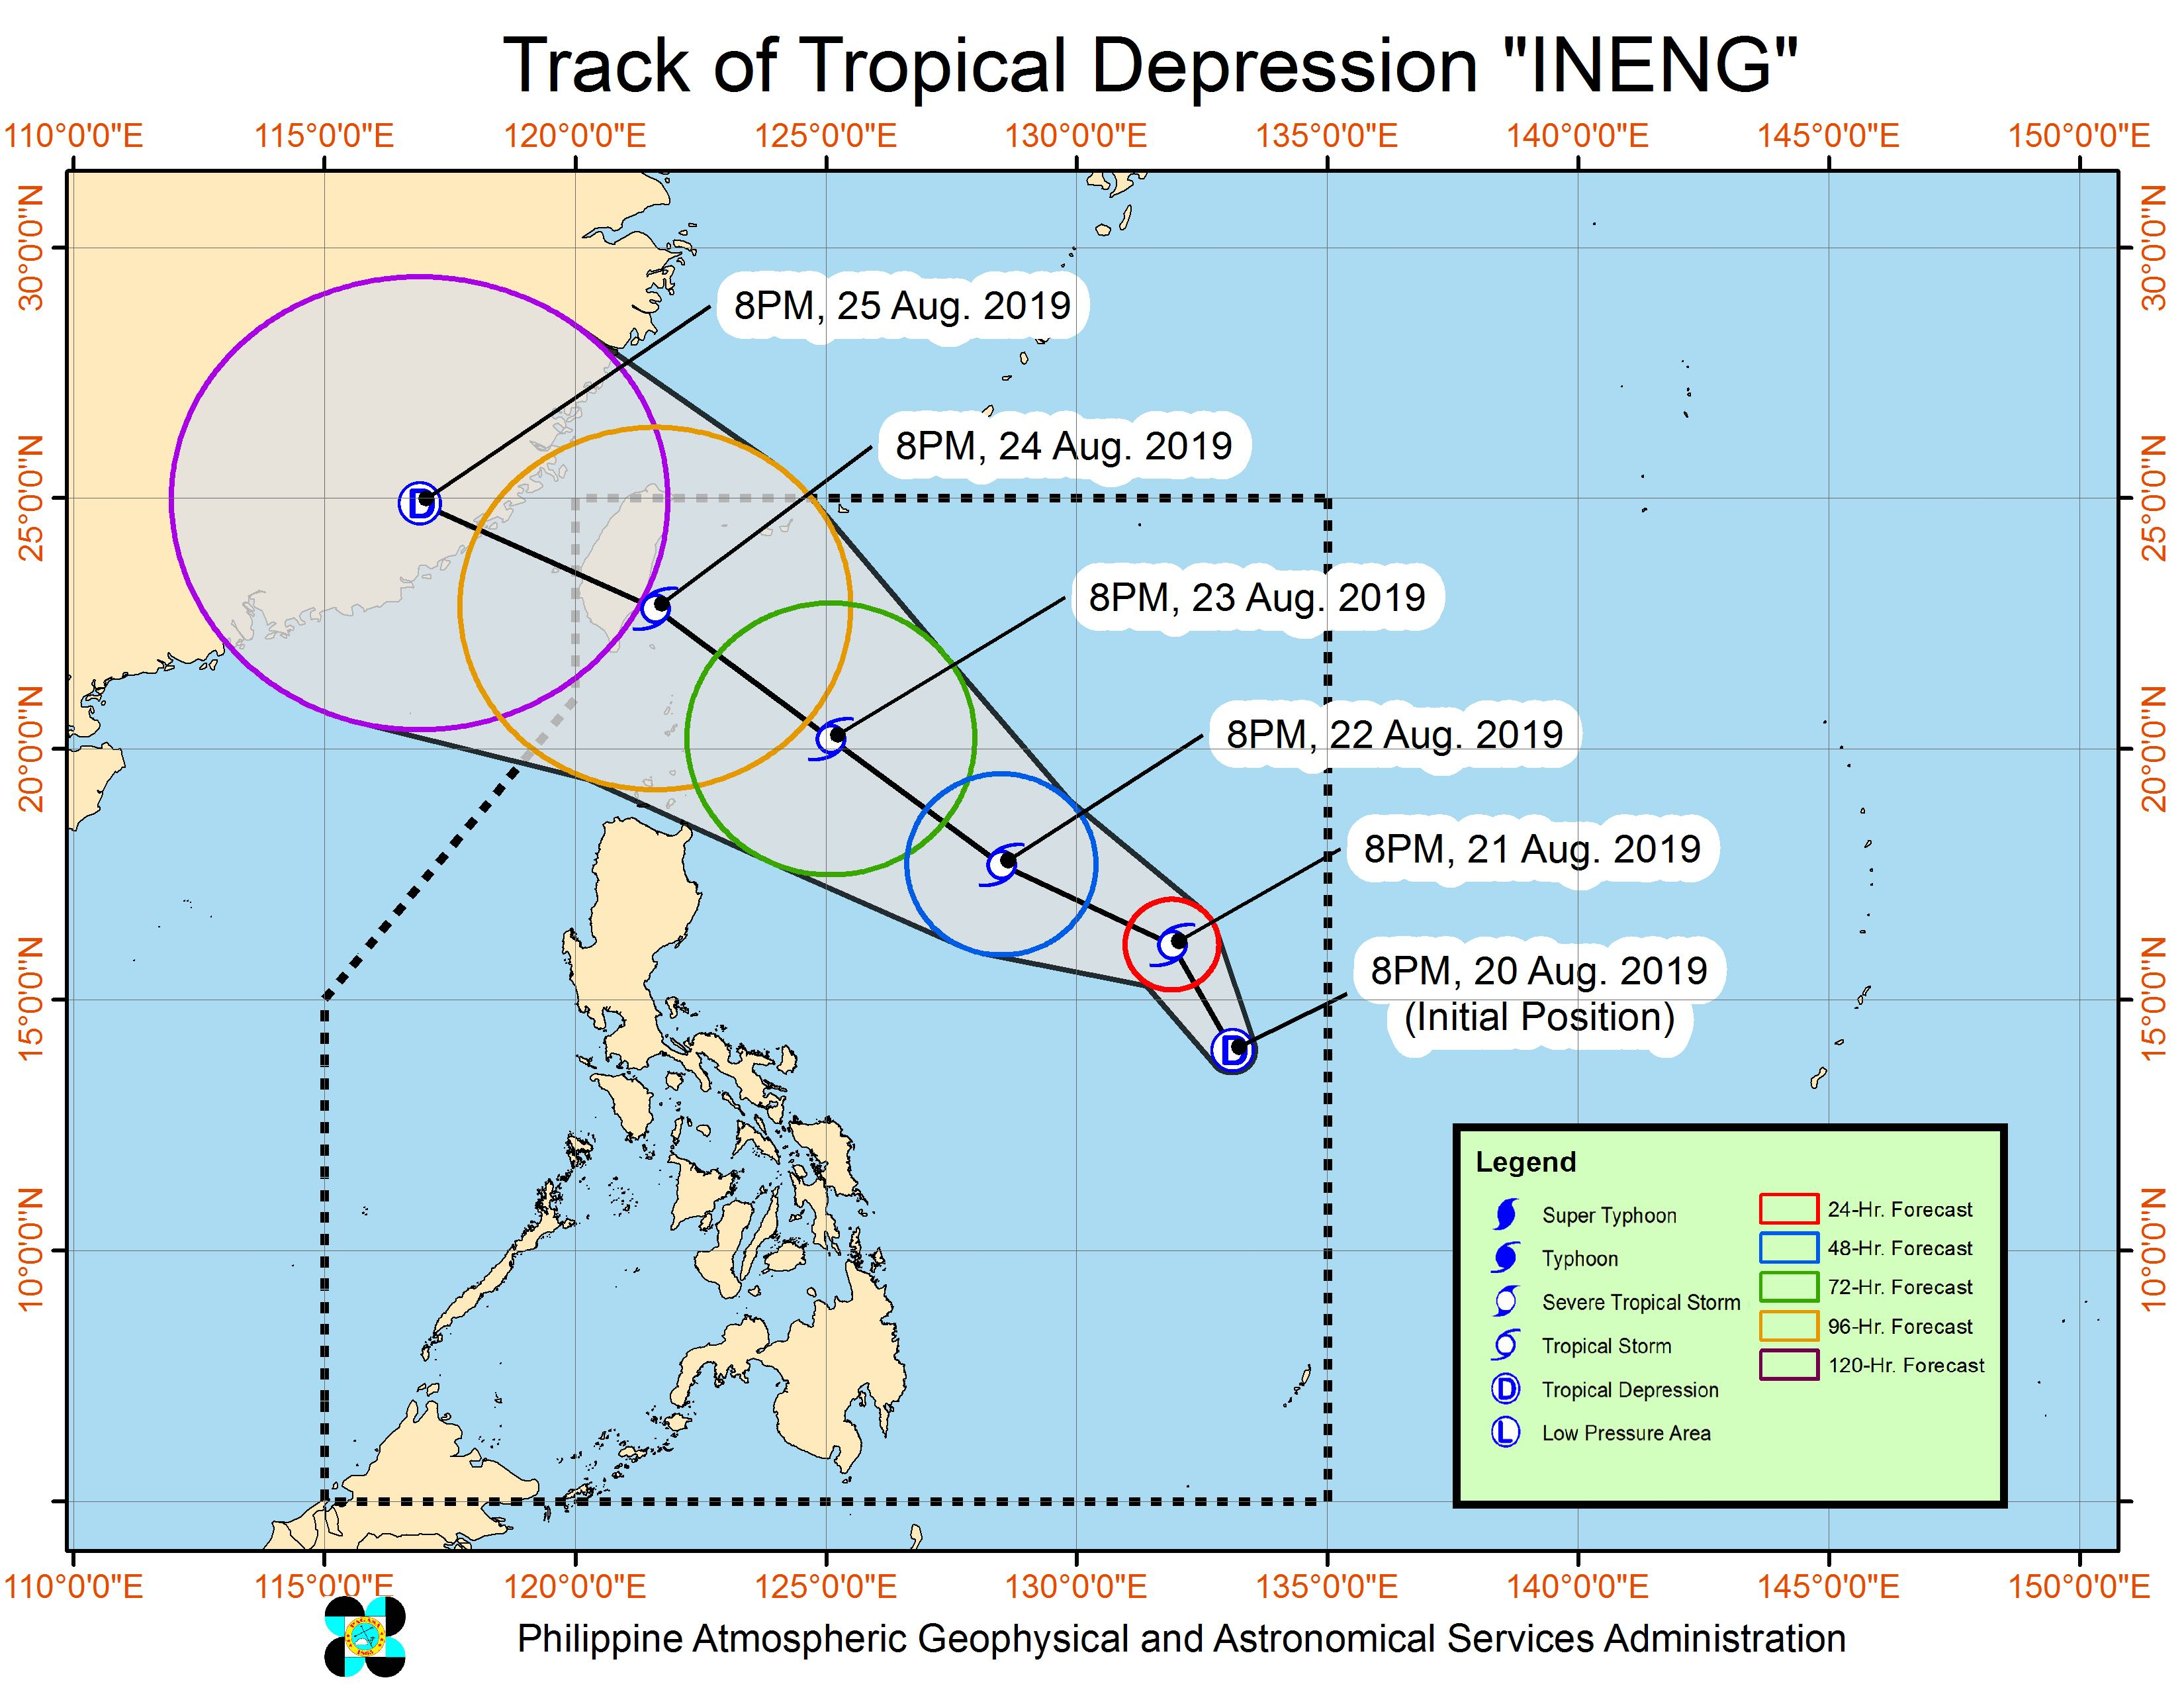 Forecast track of Tropical Depression Ineng as of August 20, 2019, 11 pm. Image from PAGASA